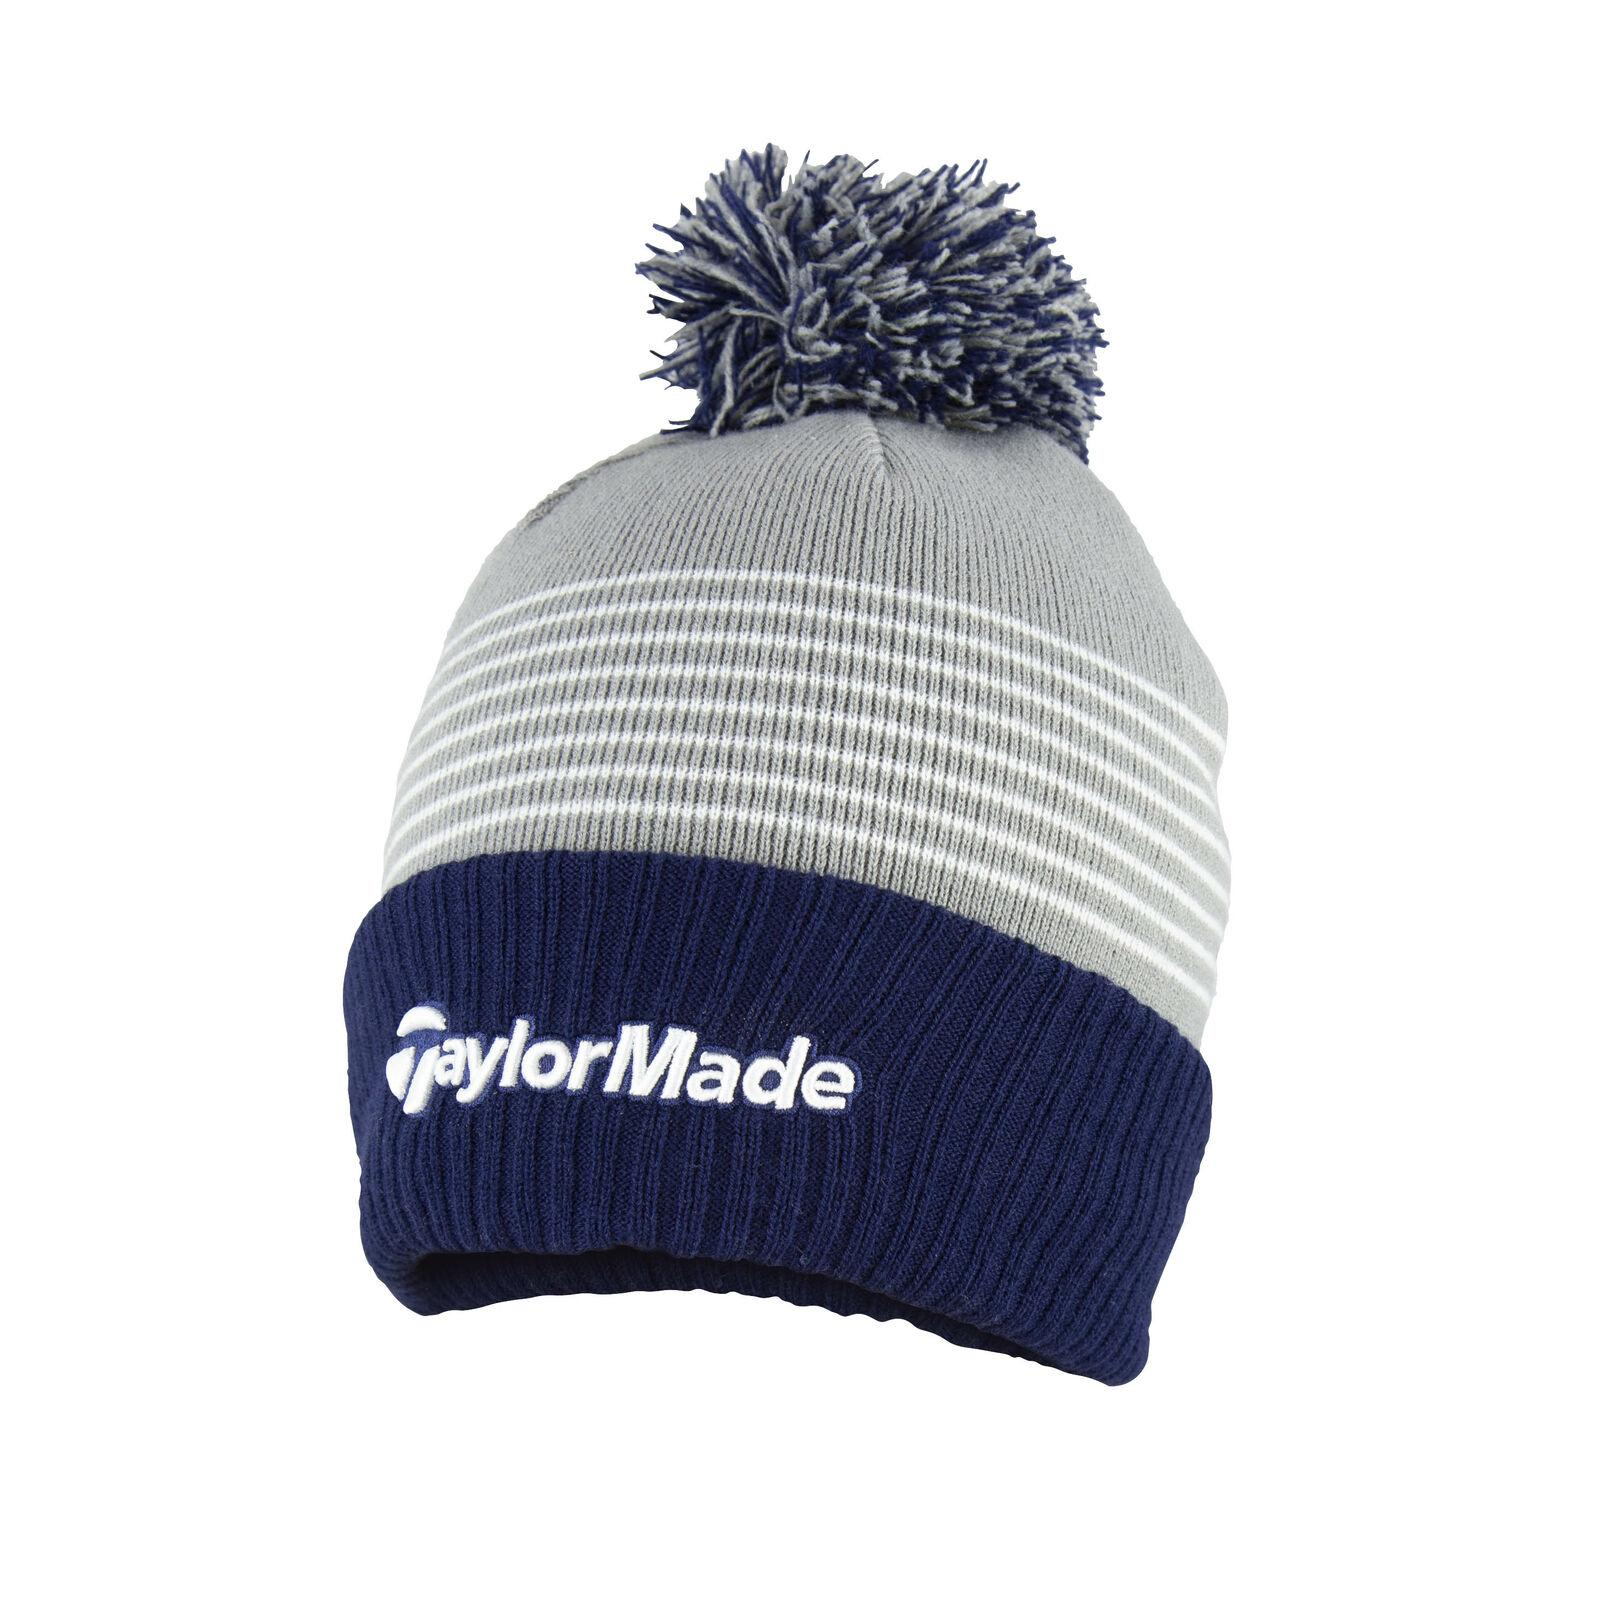 Taylormade bobble hat